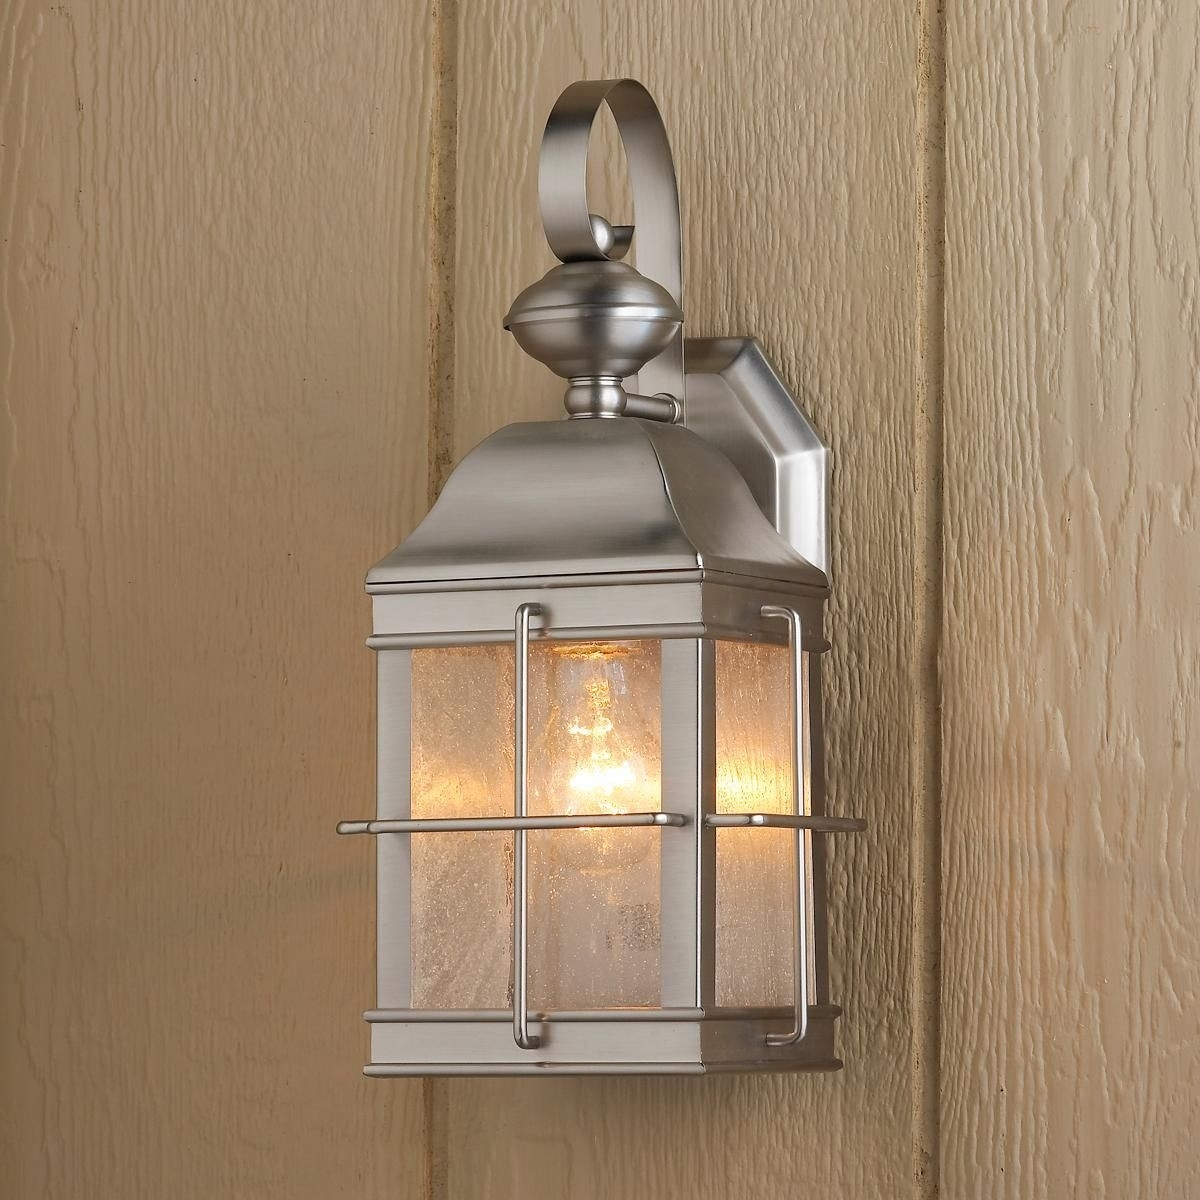 Outdoor Entrance Lights Elegant Nautical Inspired Lantern Outdoor with Outdoor Entrance Lanterns (Image 14 of 20)